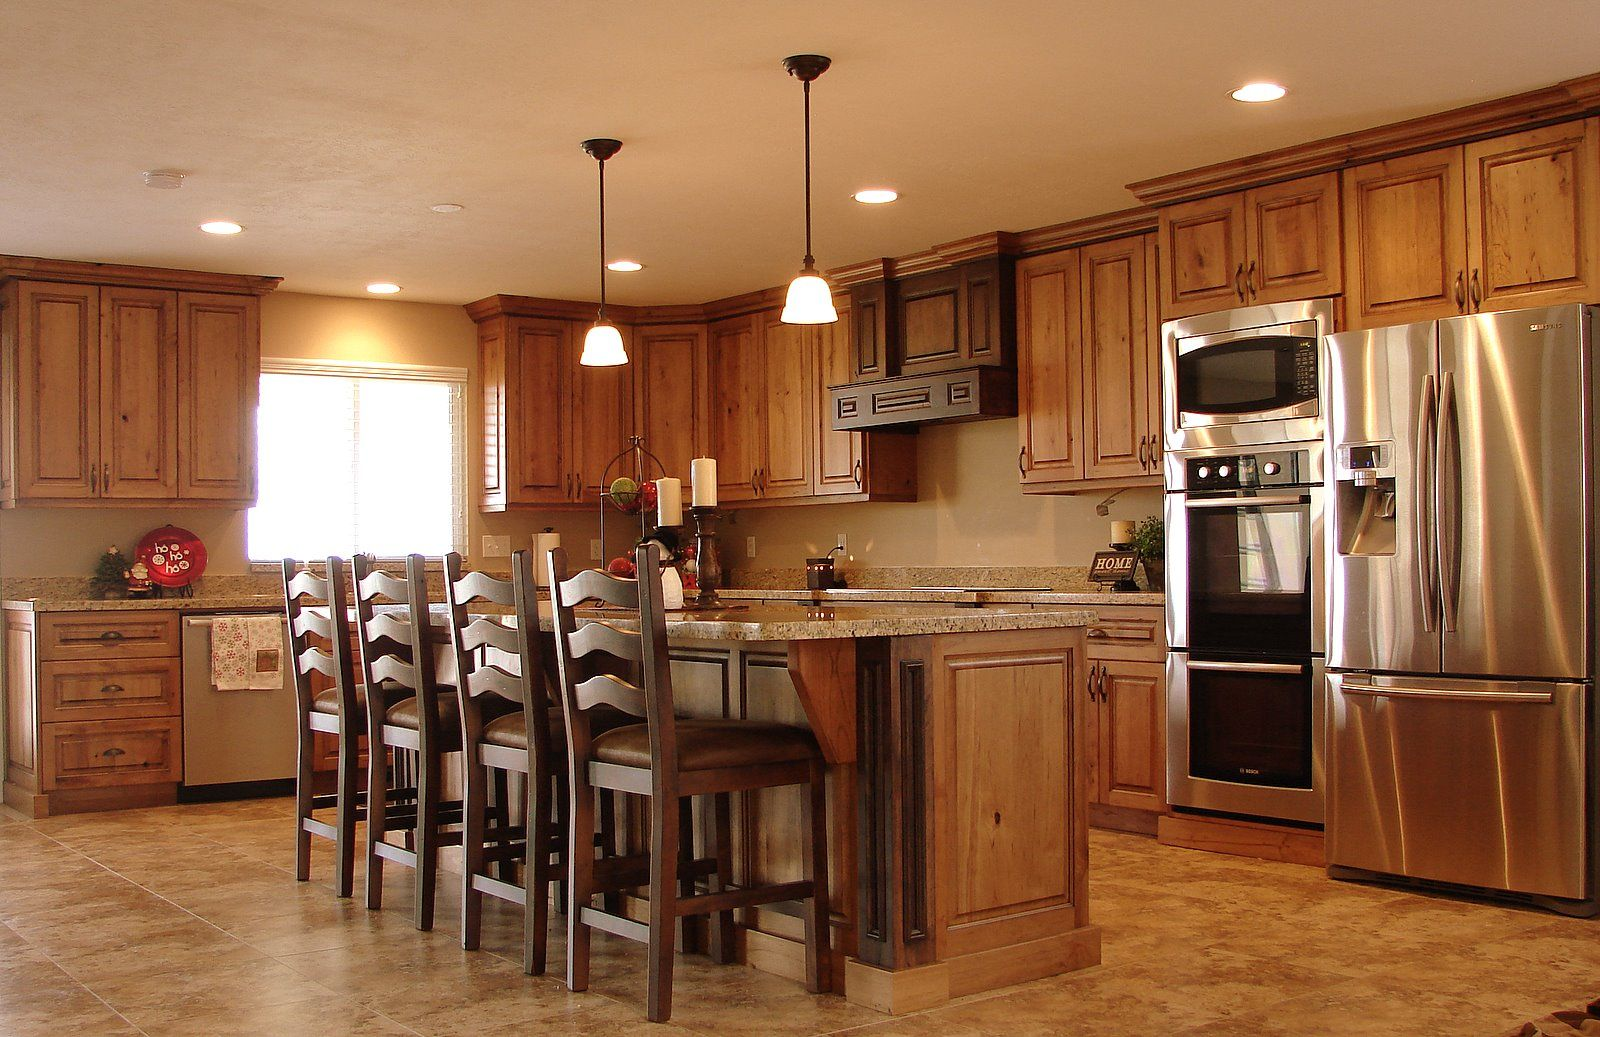 Rustic Cherry Cabinets With Images Kitchen Cabinet Design